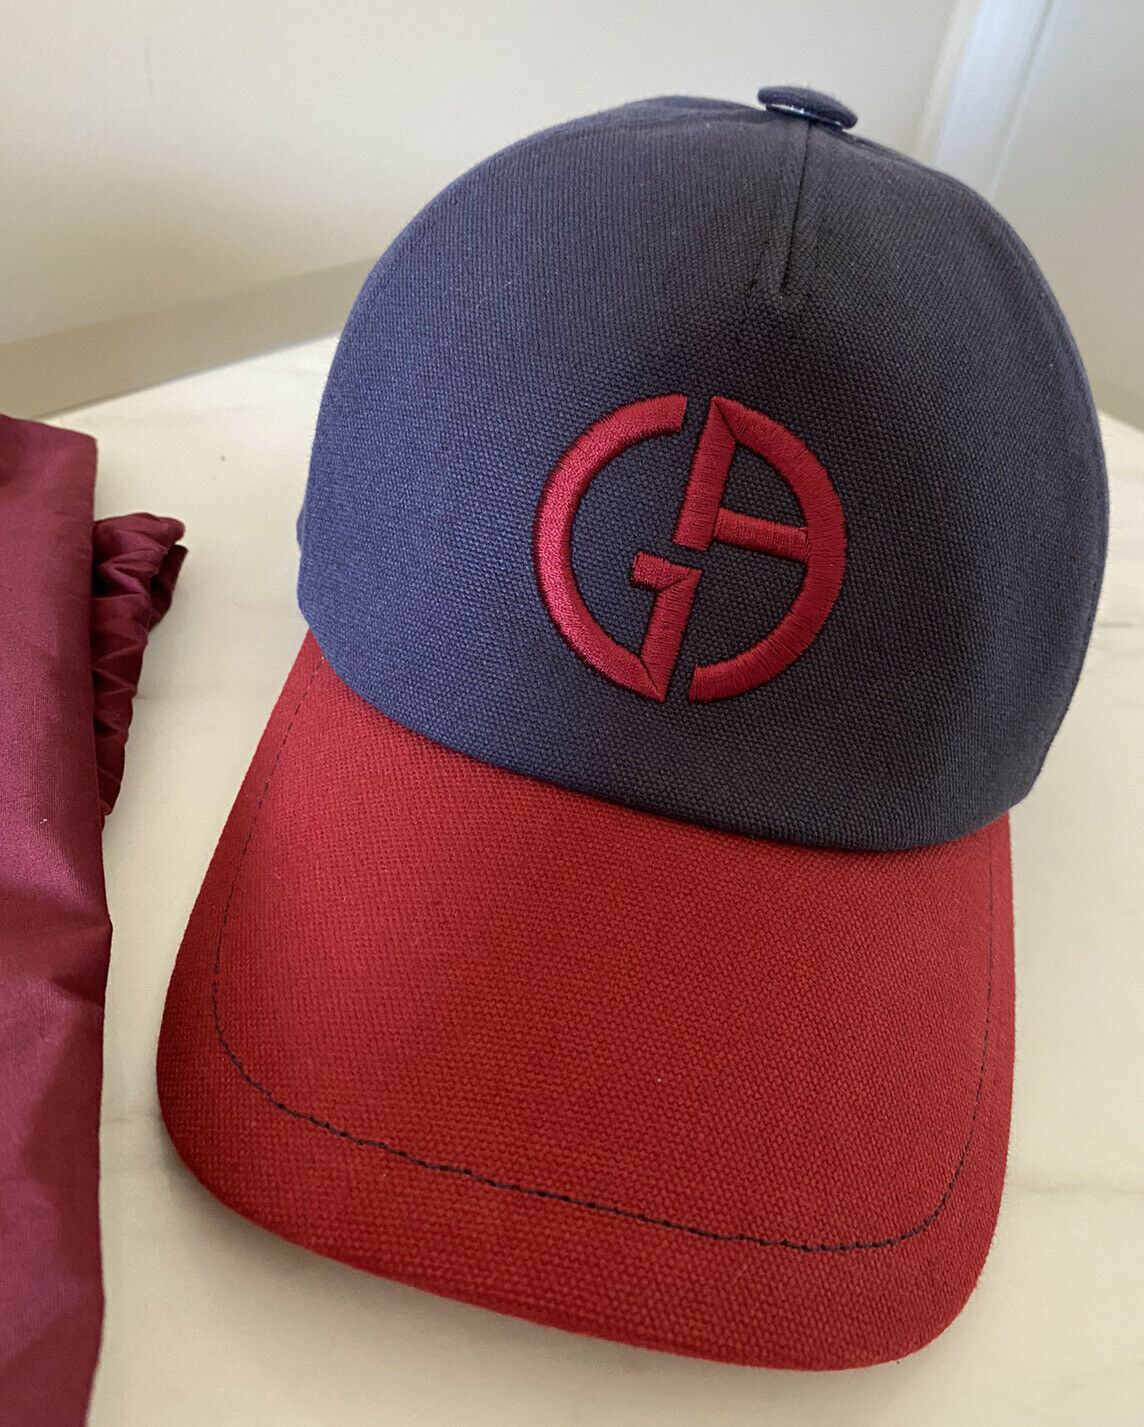 NWT $545 Giorgio Armani Limited Edition Truker Hat Blue/Red Size 60 ( L )Italy